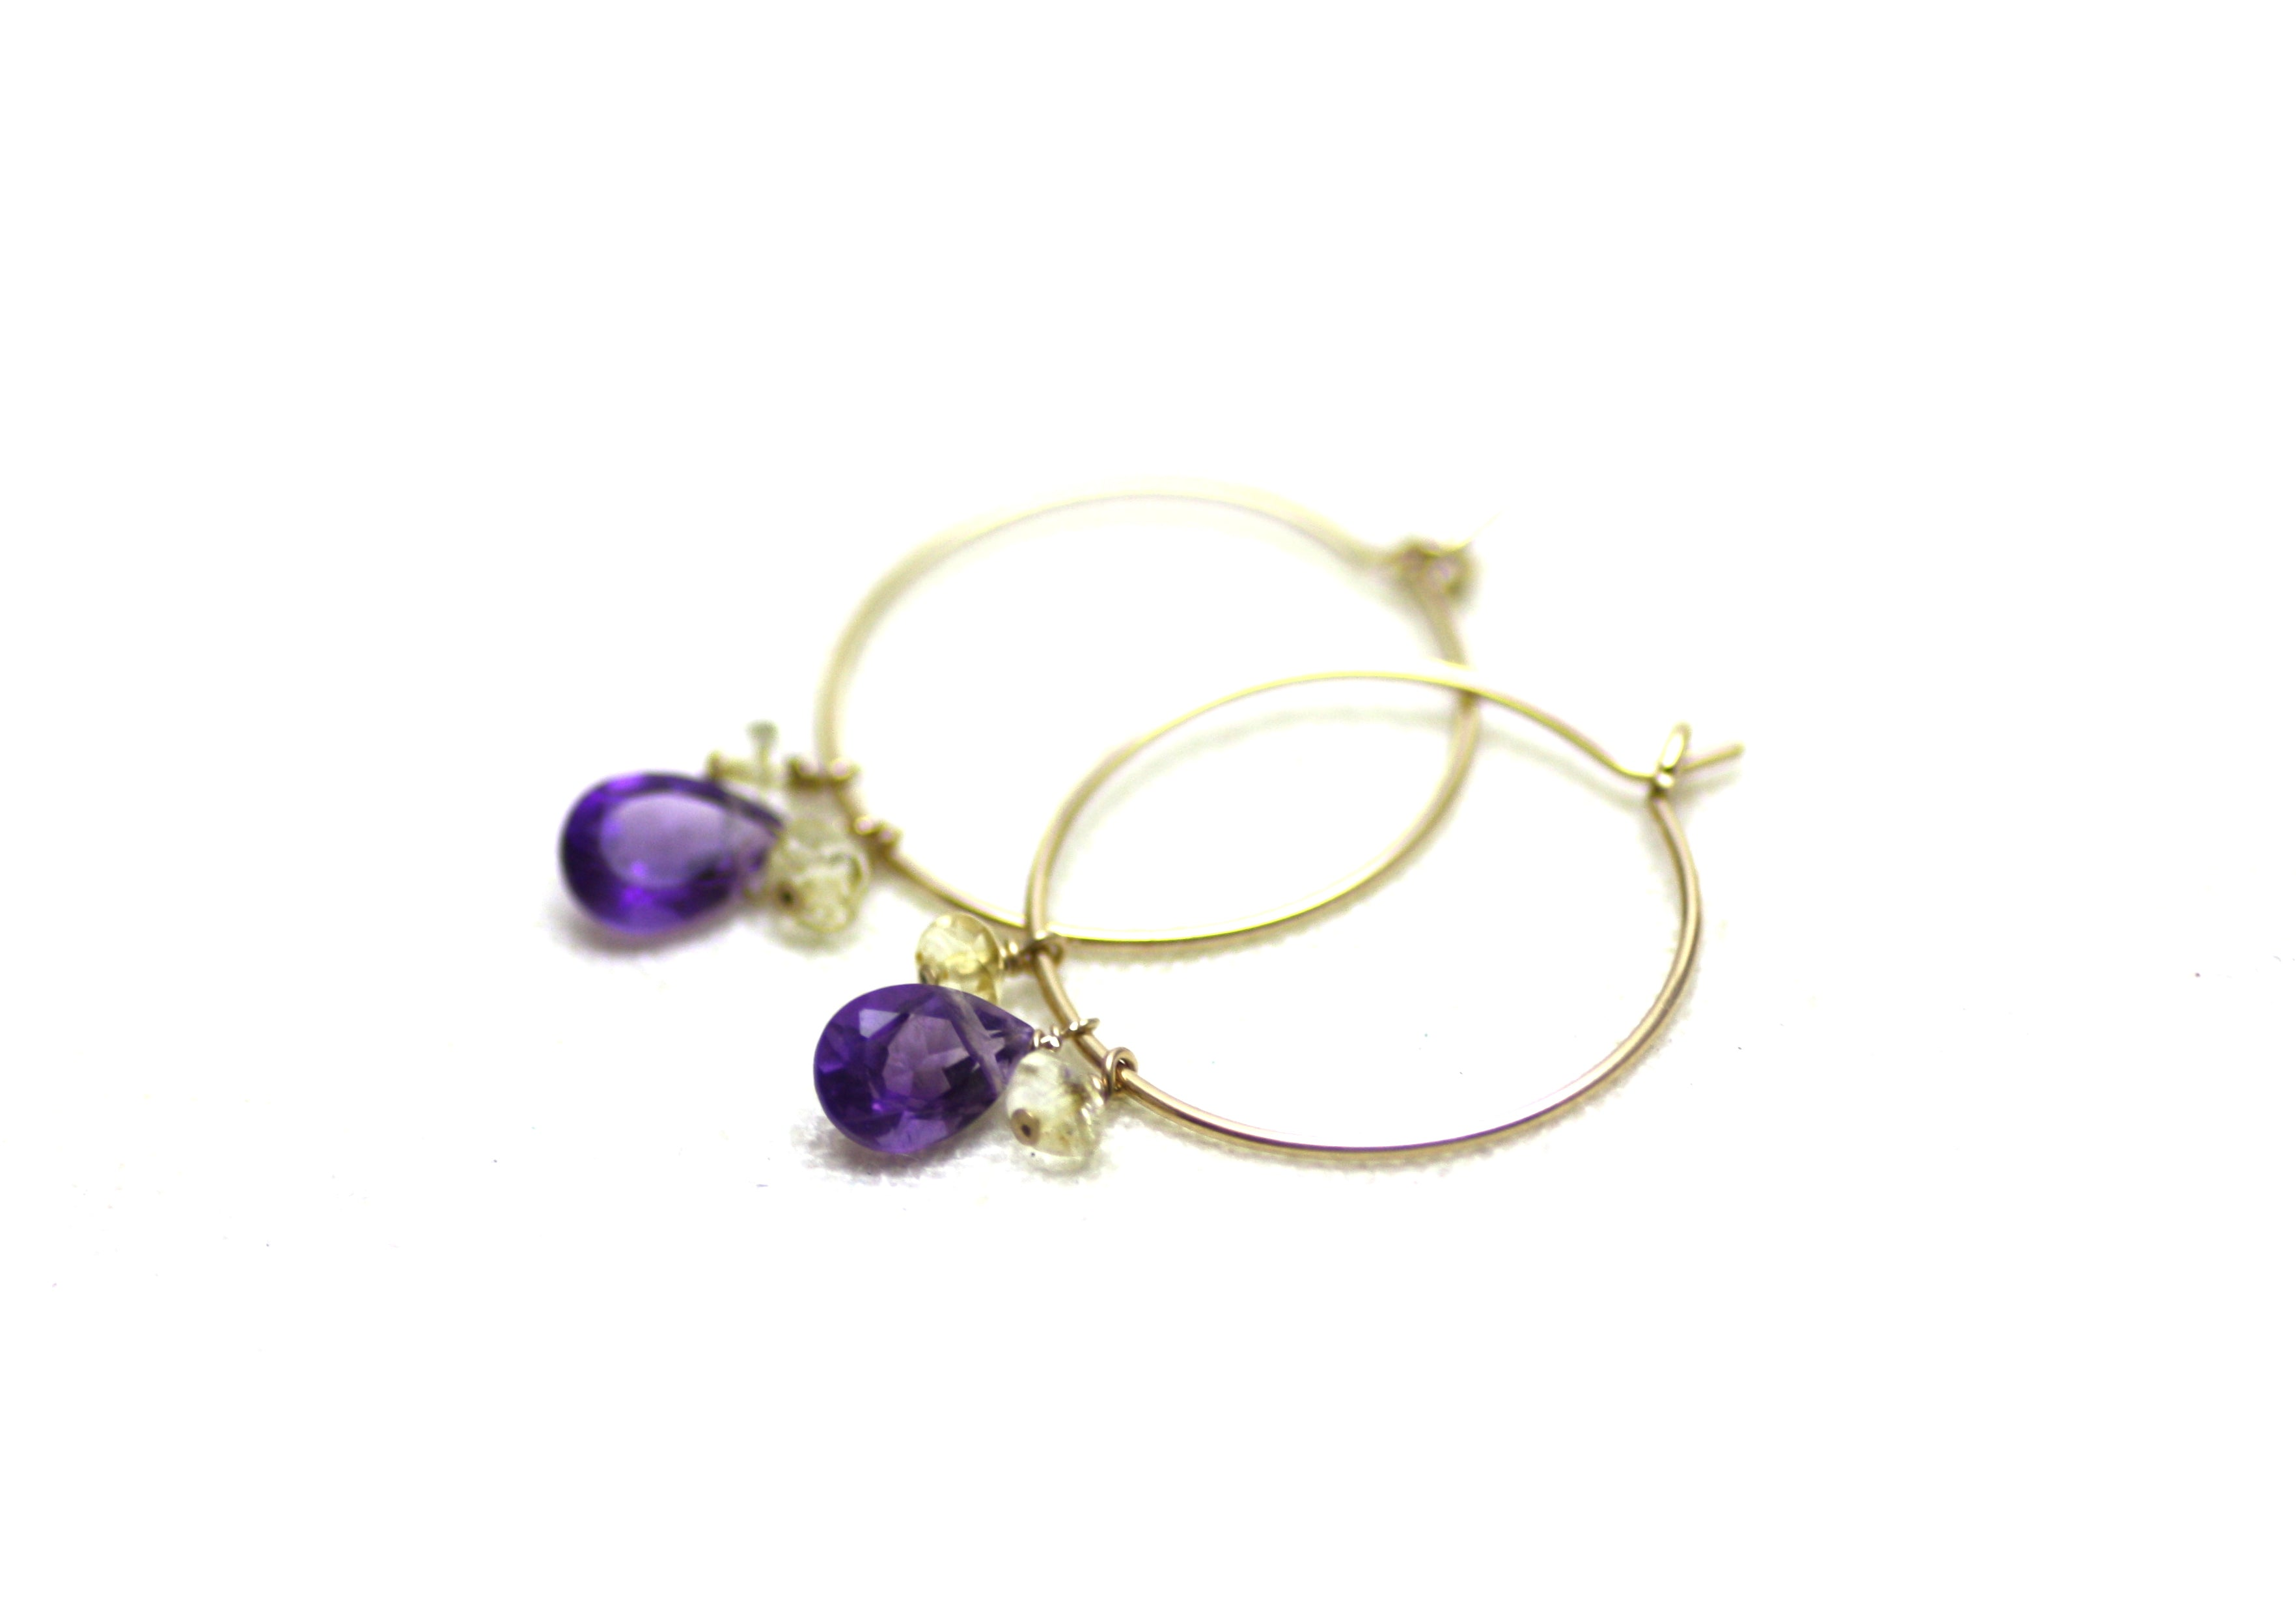 Gold Filled and Teardrop Gemstone Hoop Earrings CLEARANCE